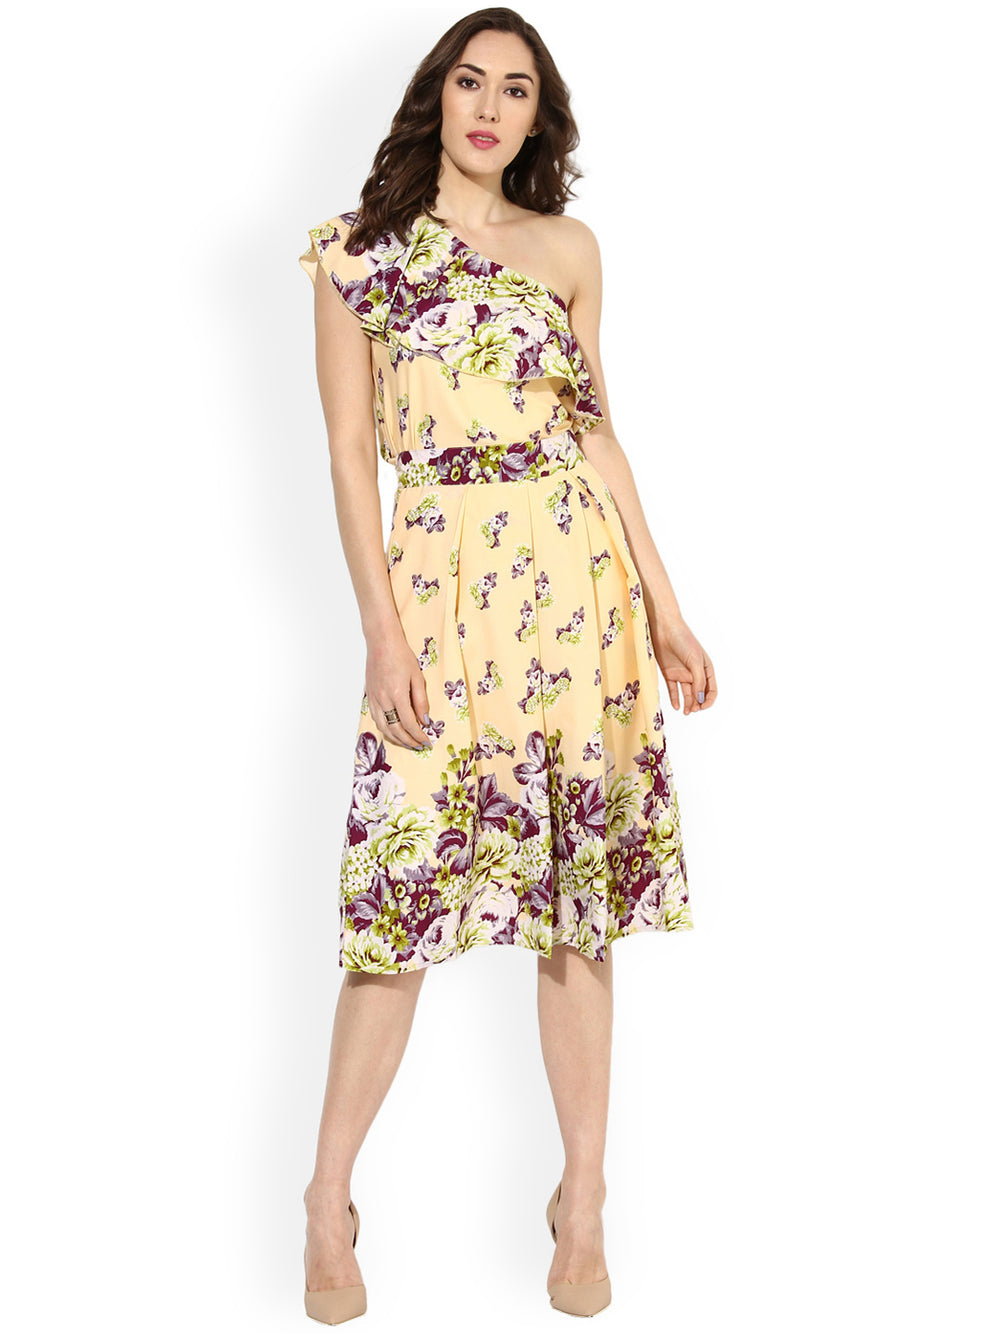 Besiva Yellow Floral Print Flared Skirt